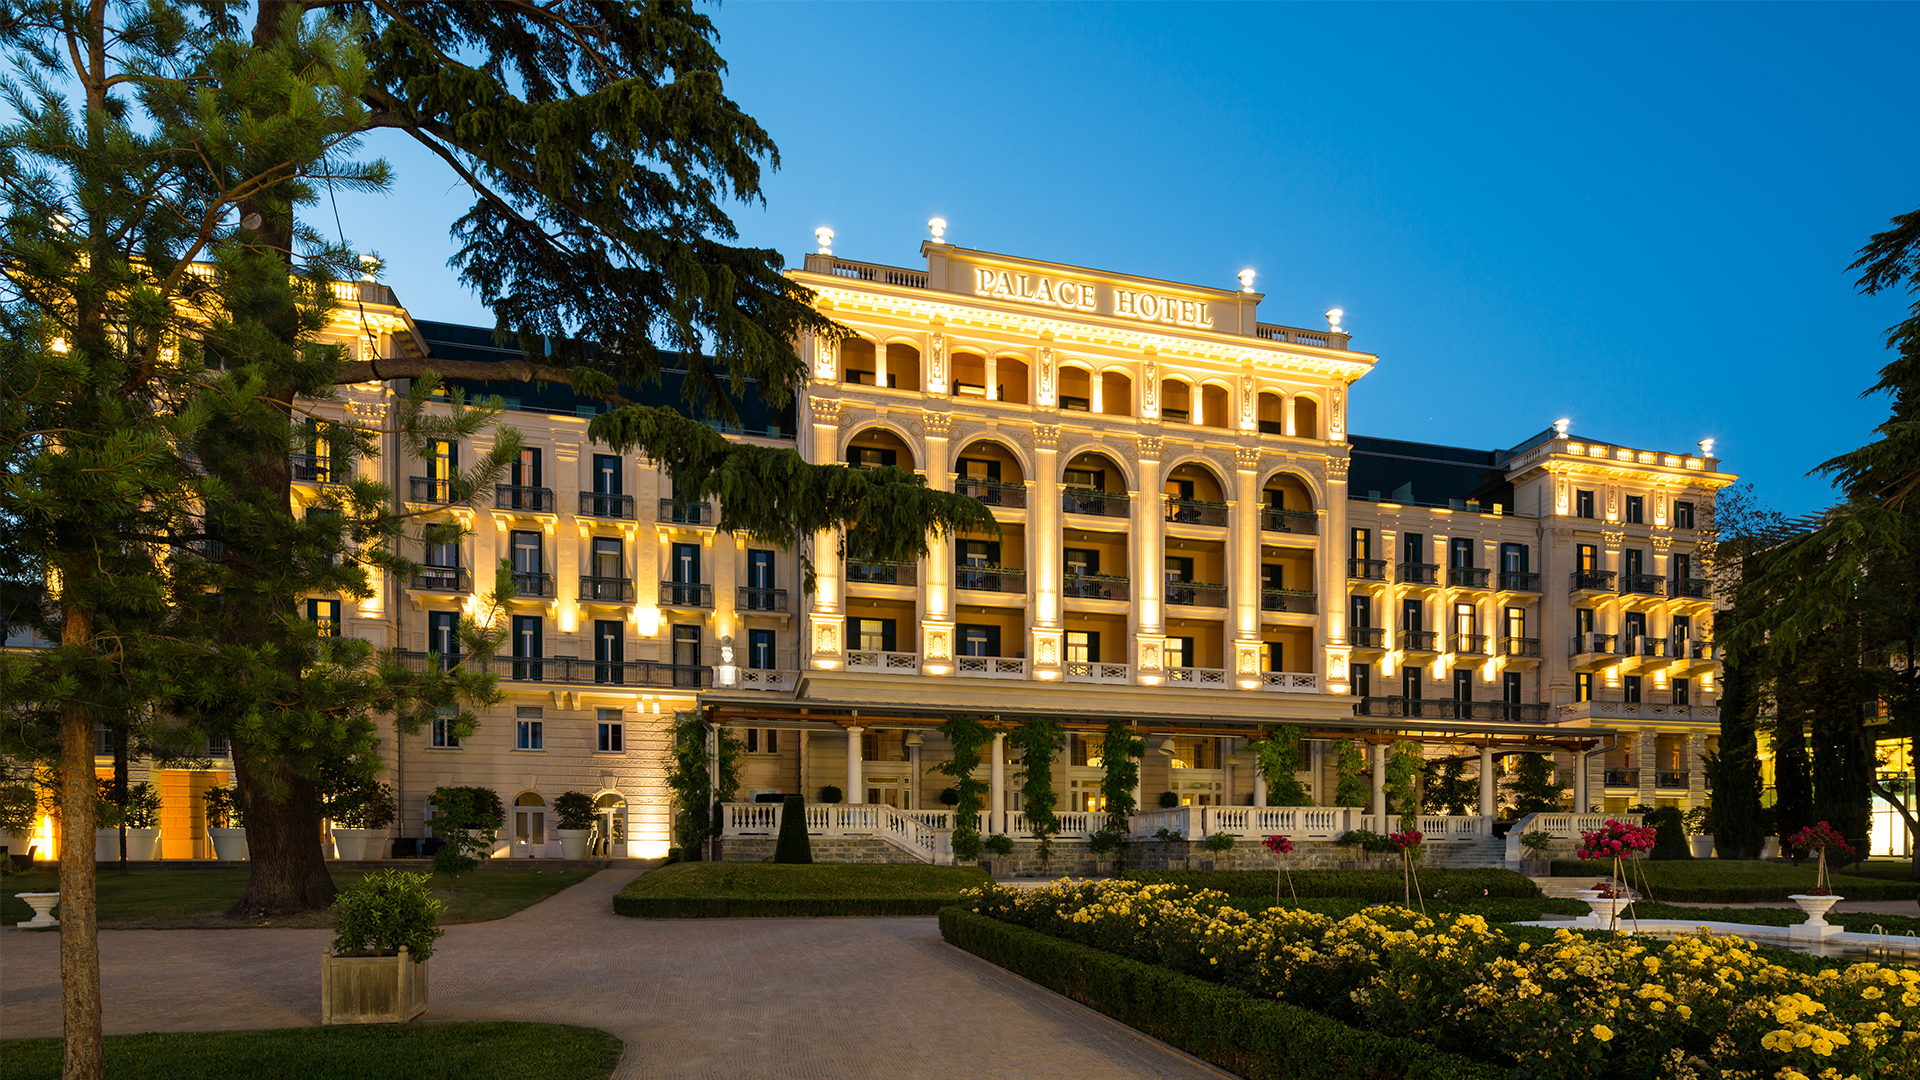 Us Group Discovered The Best Of The World With Hotel Kempinski - Palace-hotel-in-slovenia